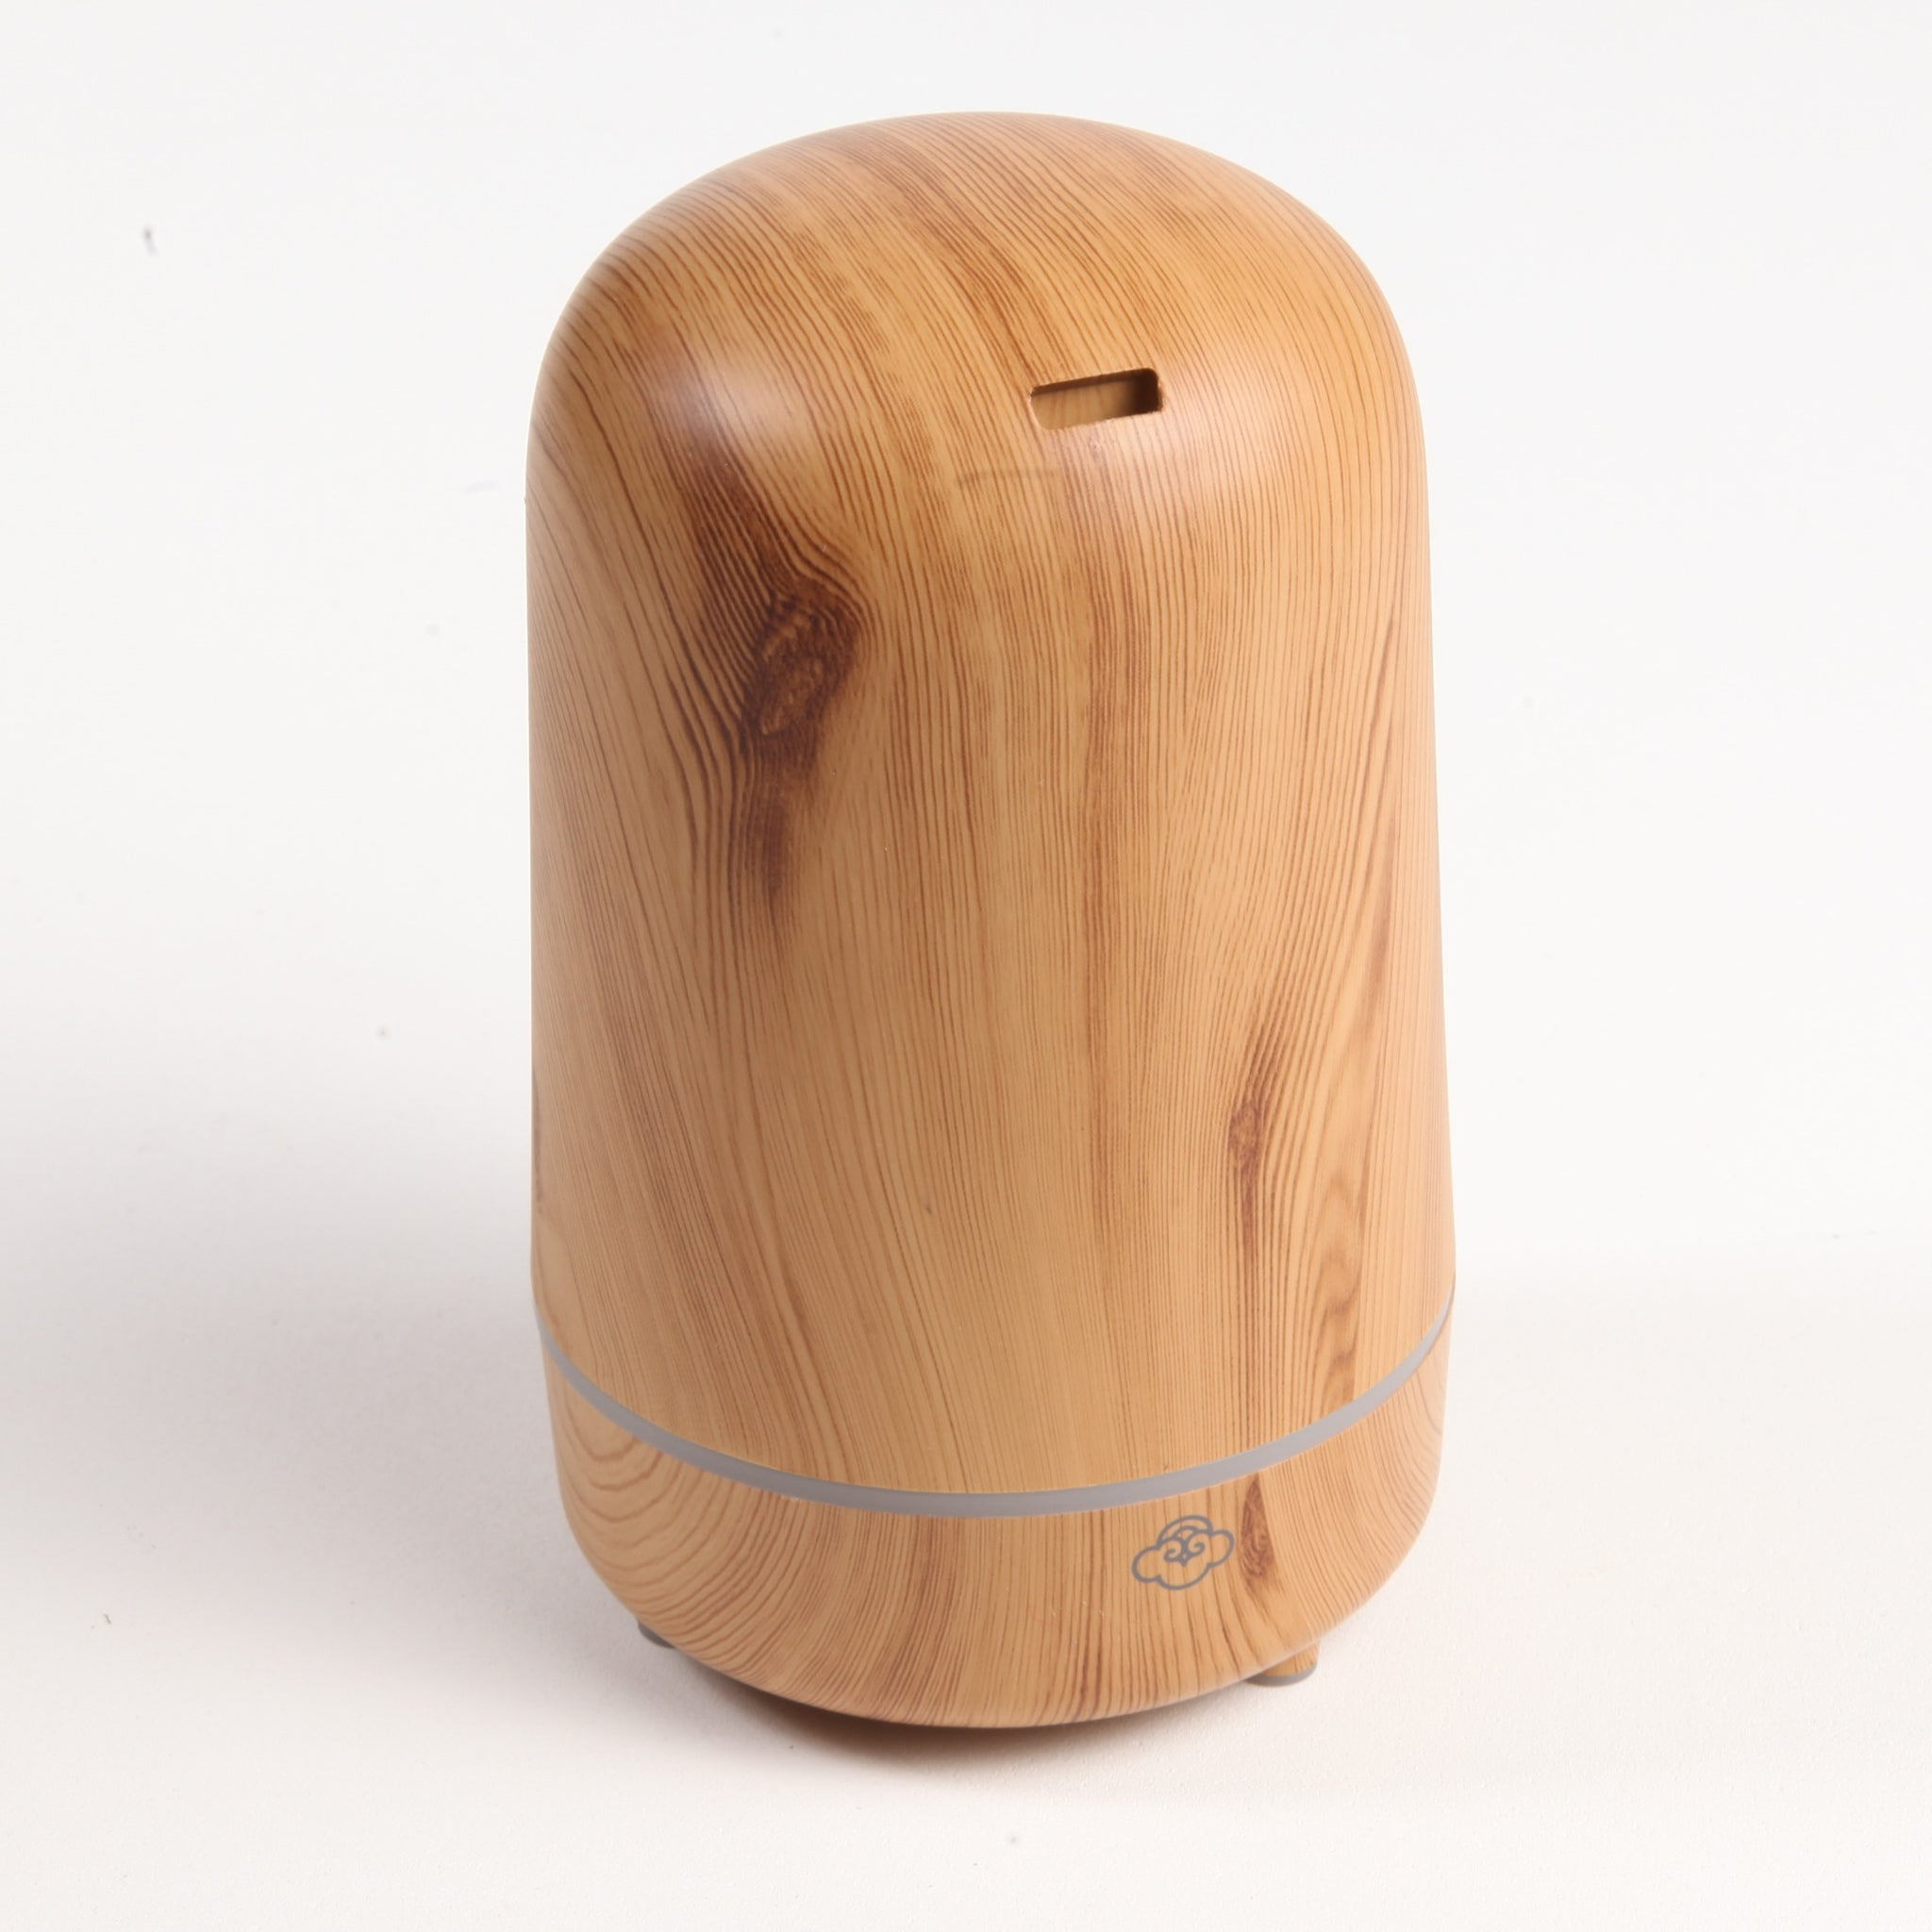 Wood Lighthouse Diffuser